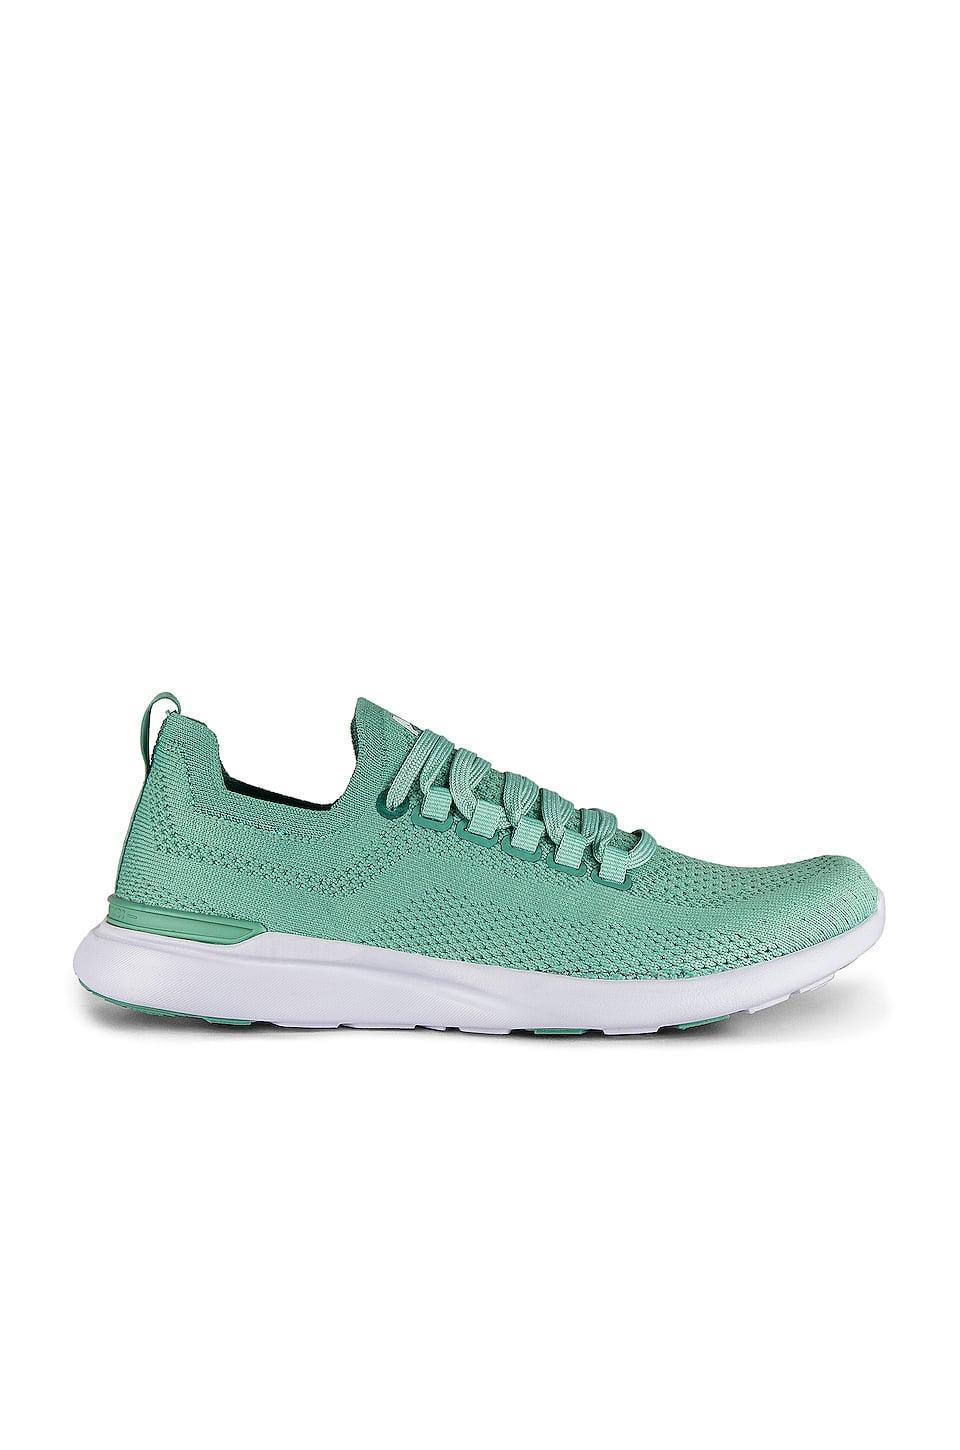 "<p>These cute green <a href=""https://www.popsugar.com/buy/APL-Techloom-Breeze-Sneakers-567945?p_name=APL%20Techloom%20Breeze%20Sneakers&retailer=revolve.com&pid=567945&price=200&evar1=fab%3Aus&evar9=47415945&evar98=https%3A%2F%2Fwww.popsugar.com%2Ffashion%2Fphoto-gallery%2F47415945%2Fimage%2F47415953%2FAPL-Techloom-Breeze-Sneakers&list1=shopping%2Cshoes%2Csneakers%2Crevolve&prop13=mobile&pdata=1"" class=""link rapid-noclick-resp"" rel=""nofollow noopener"" target=""_blank"" data-ylk=""slk:APL Techloom Breeze Sneakers"">APL Techloom Breeze Sneakers</a> ($200) were made for working out, but they're also so cute.</p>"